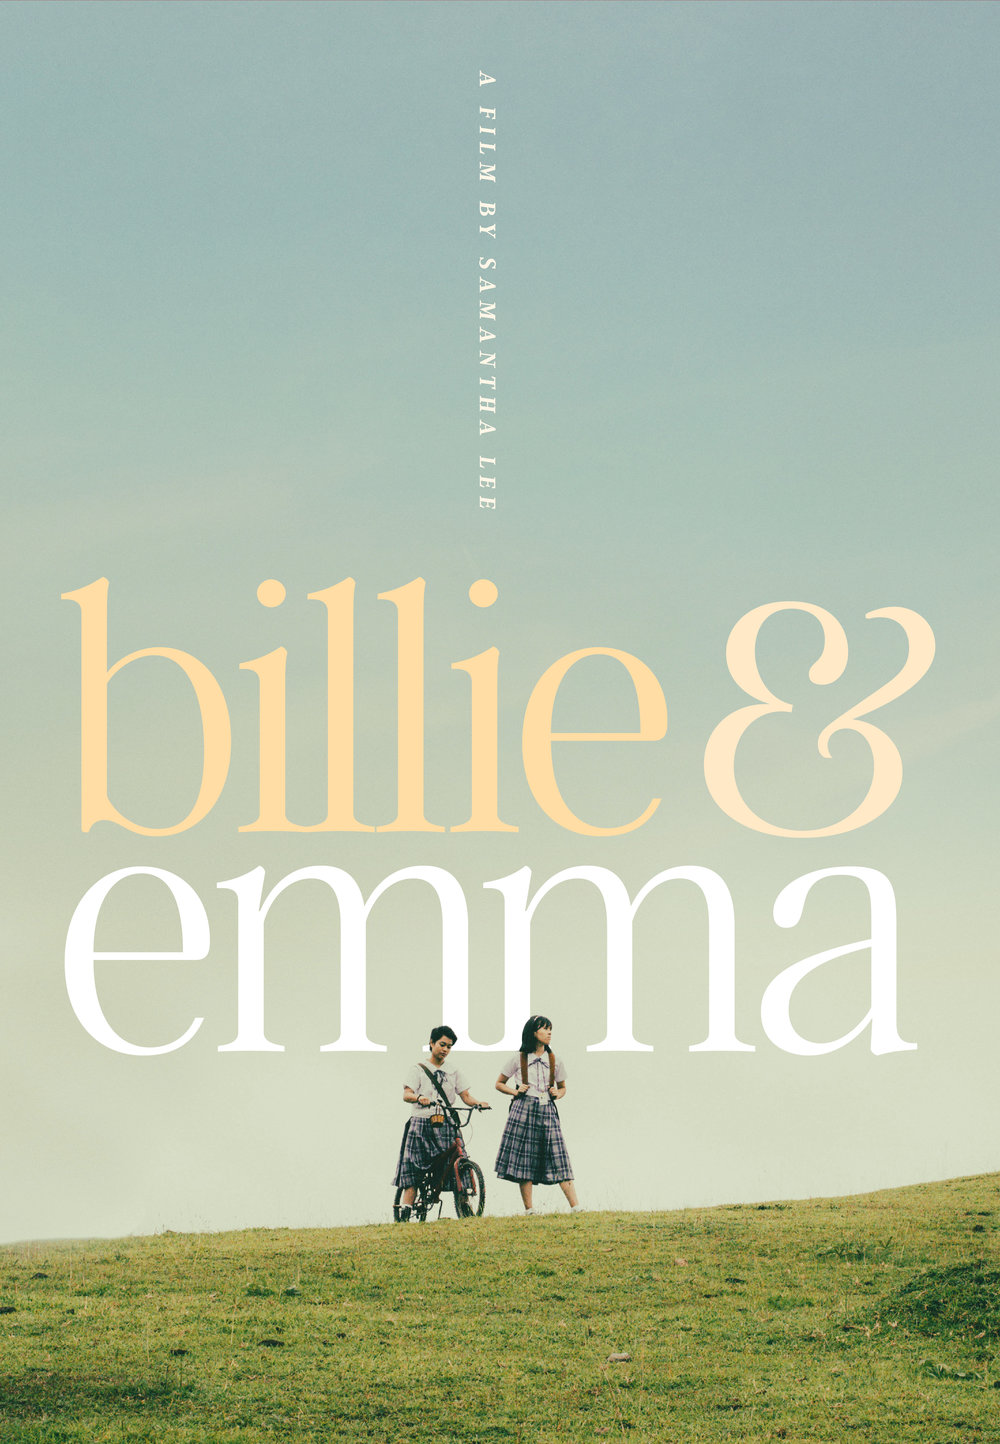 Billie & Emma   one-sheet, 2018.